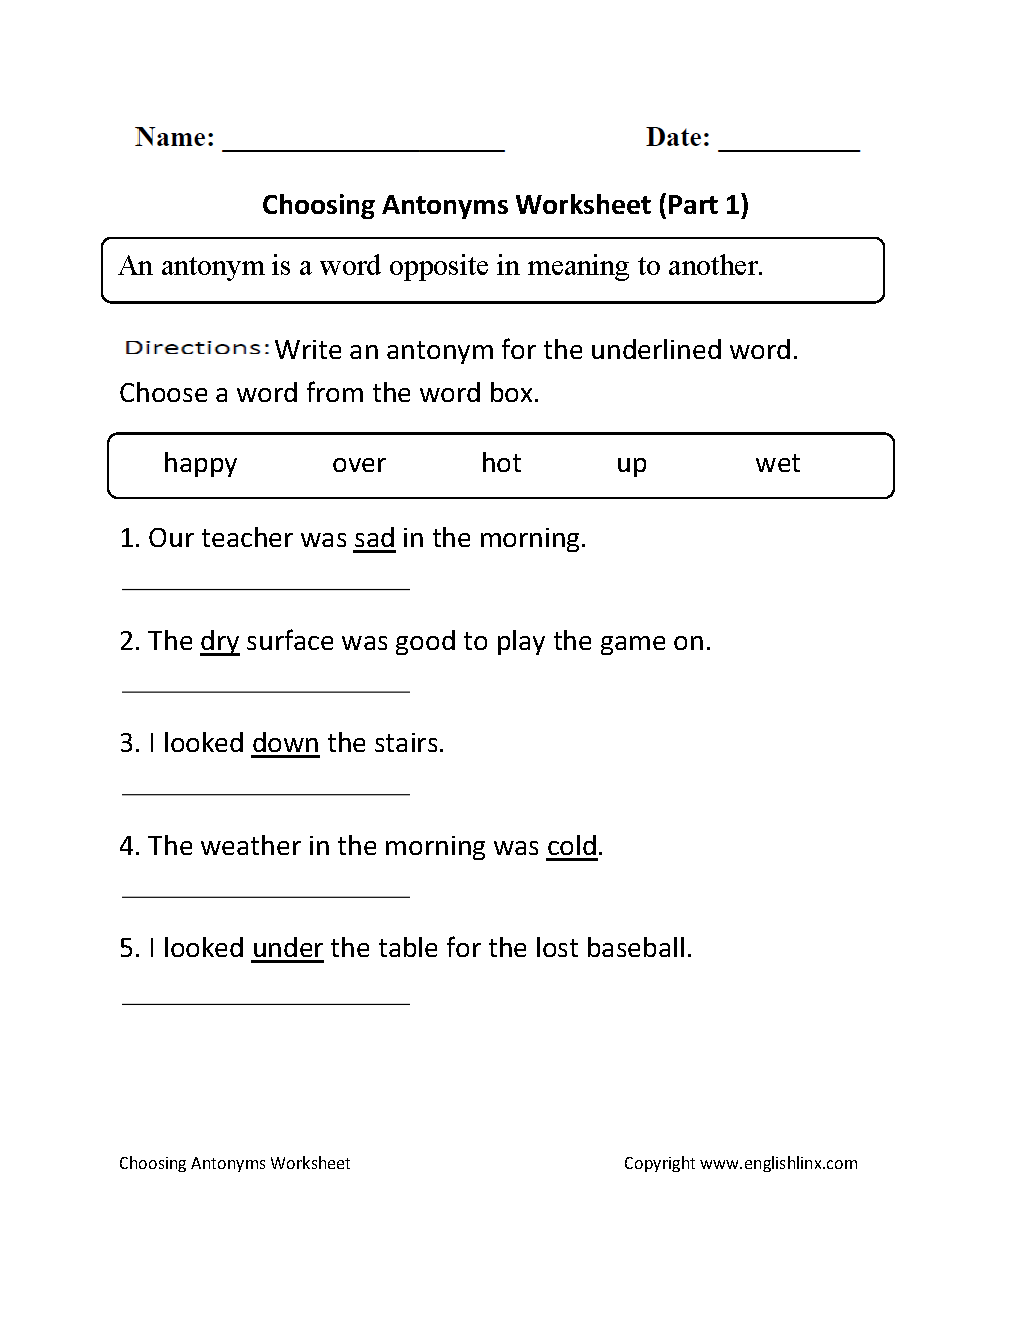 Worksheets Antonym Worksheets englishlinx com antonyms worksheets choosing part 1